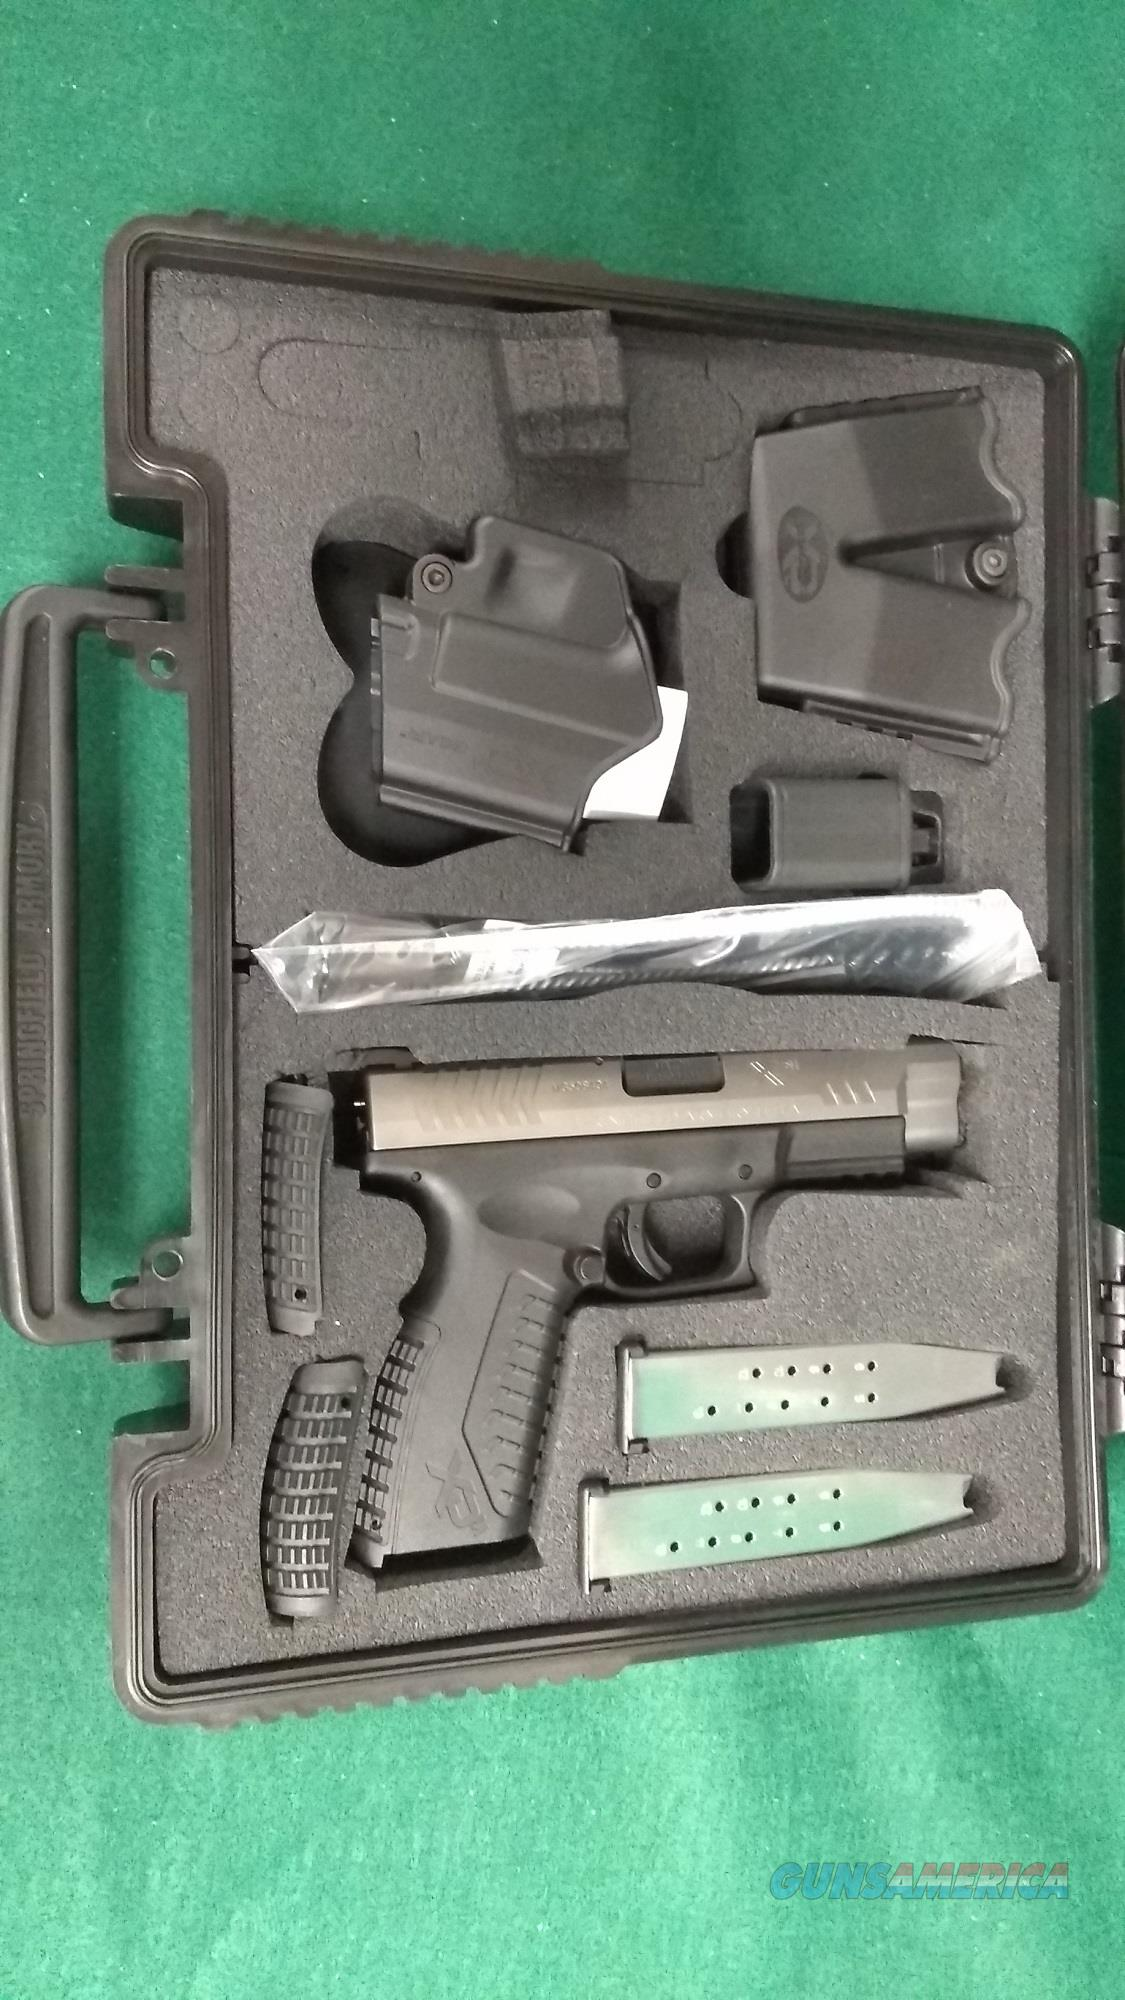 Springfield XDM45 Bi-Tone - Holster, Mag Pouch, Two Mags  Guns > Pistols > Springfield Armory Pistols > XD-M